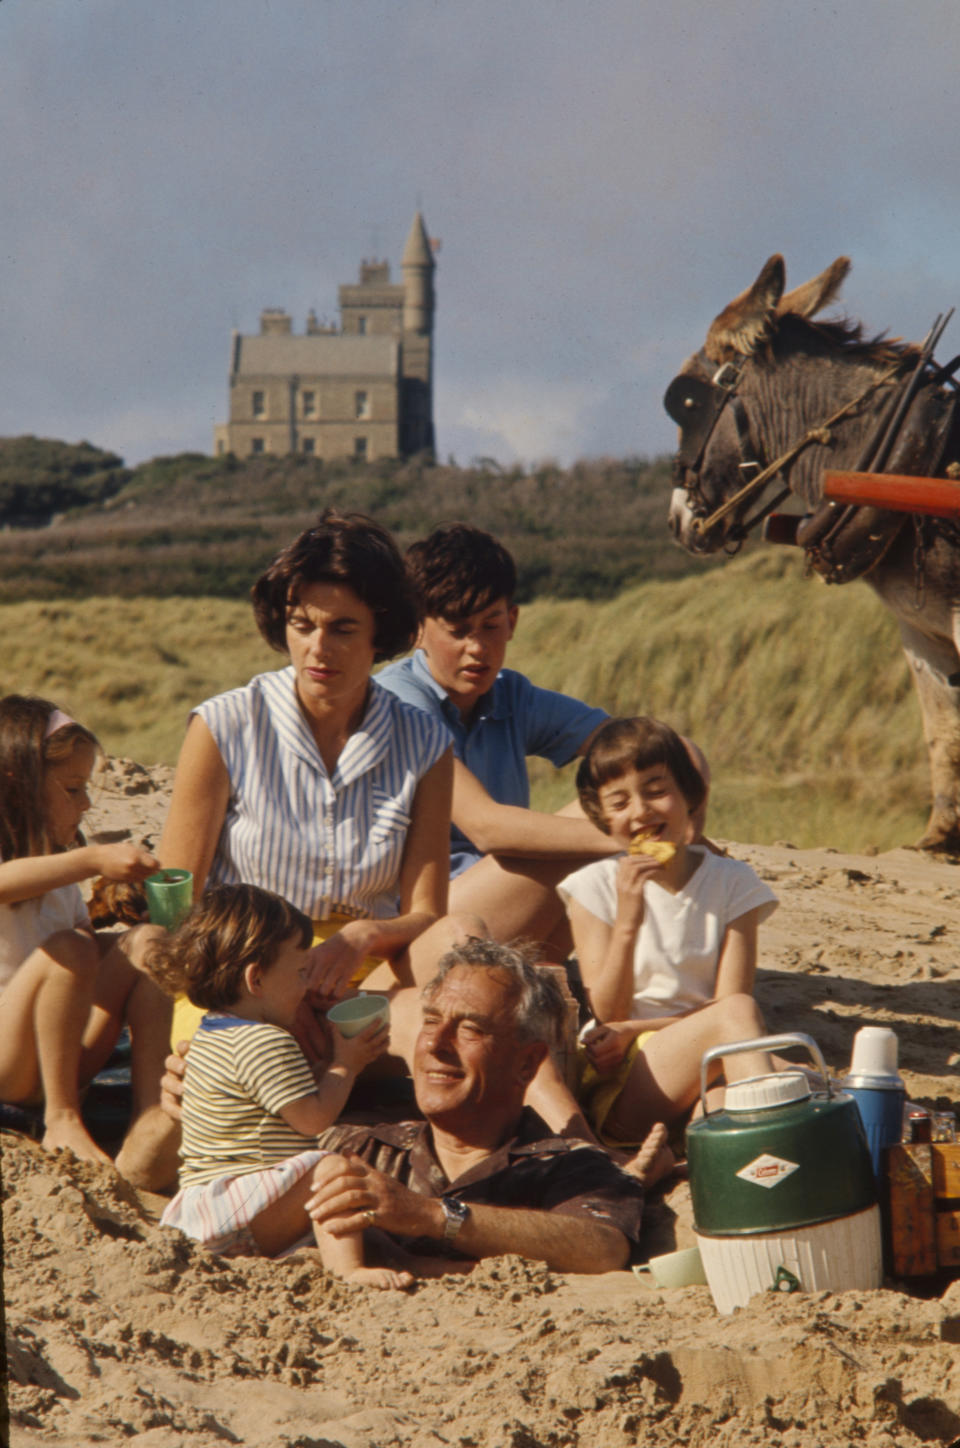 At the beach in front of Classiebawn Castle, Louis Mountbatten, 1st Earl Mountbatten of Burma (1900 - 1979) (center, buried in sand) plays his daughter, Lady Patricia Bradbourne (later 2nd Countess Mountbatten of Burma), and her children, from left, Joanna, Philip, Norton (later Lord Brabourne, in back), and Amanda, County Sligo, Ireland, 1963. (Photo by Ralph Crane/The LIFE Picture Collection via Getty Images)